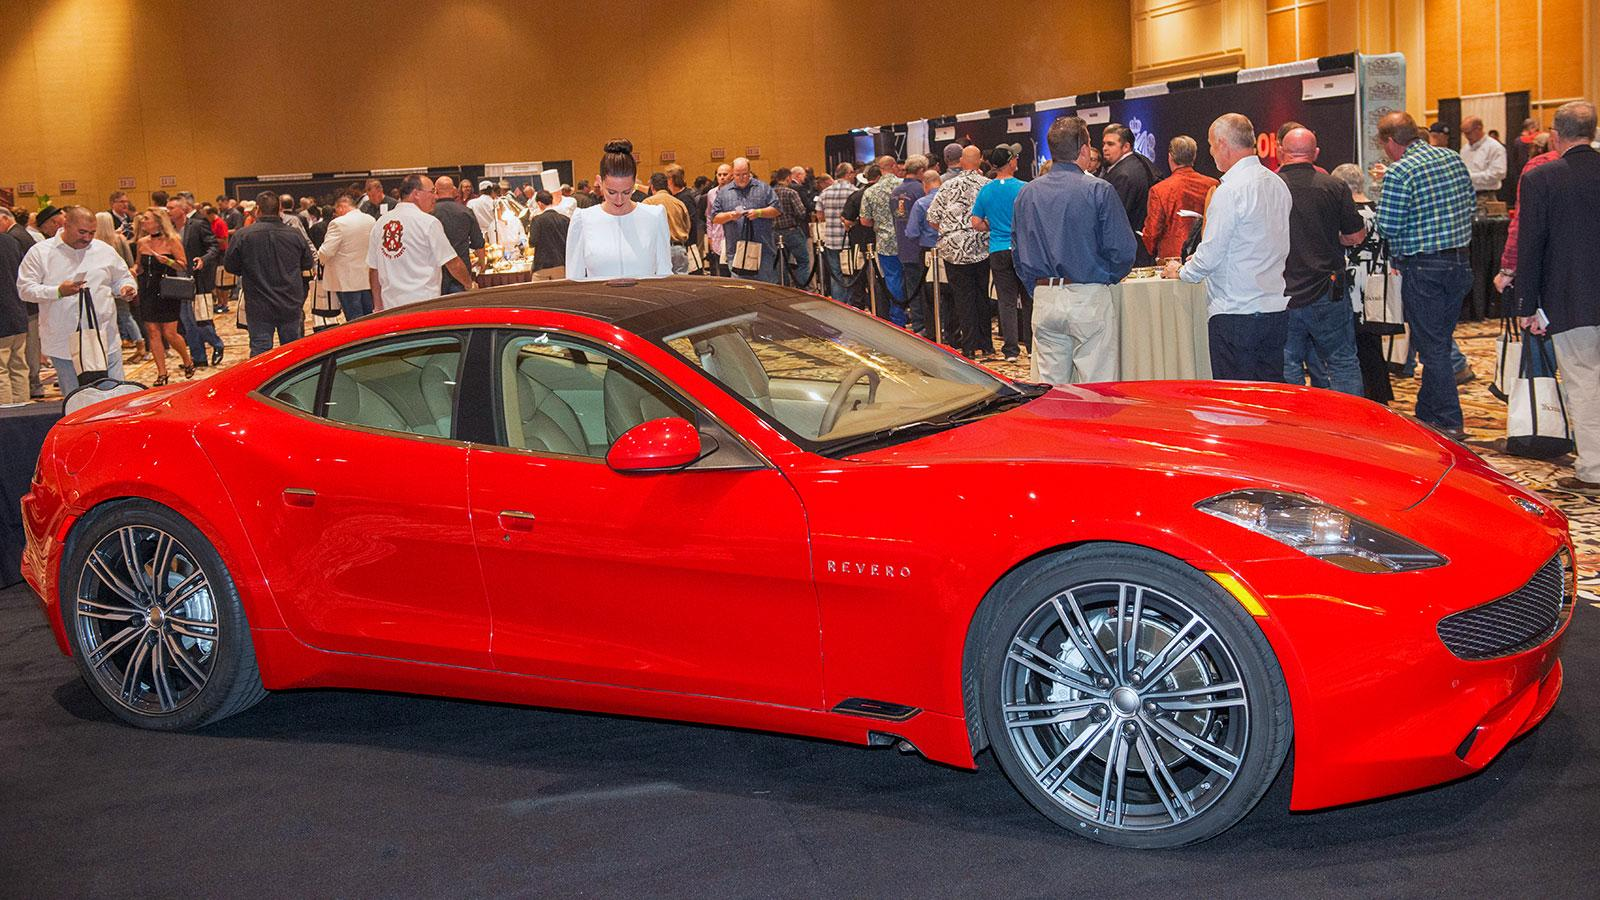 The new Karma Revero, a luxury hybrid automobile, graced the showroom floor.